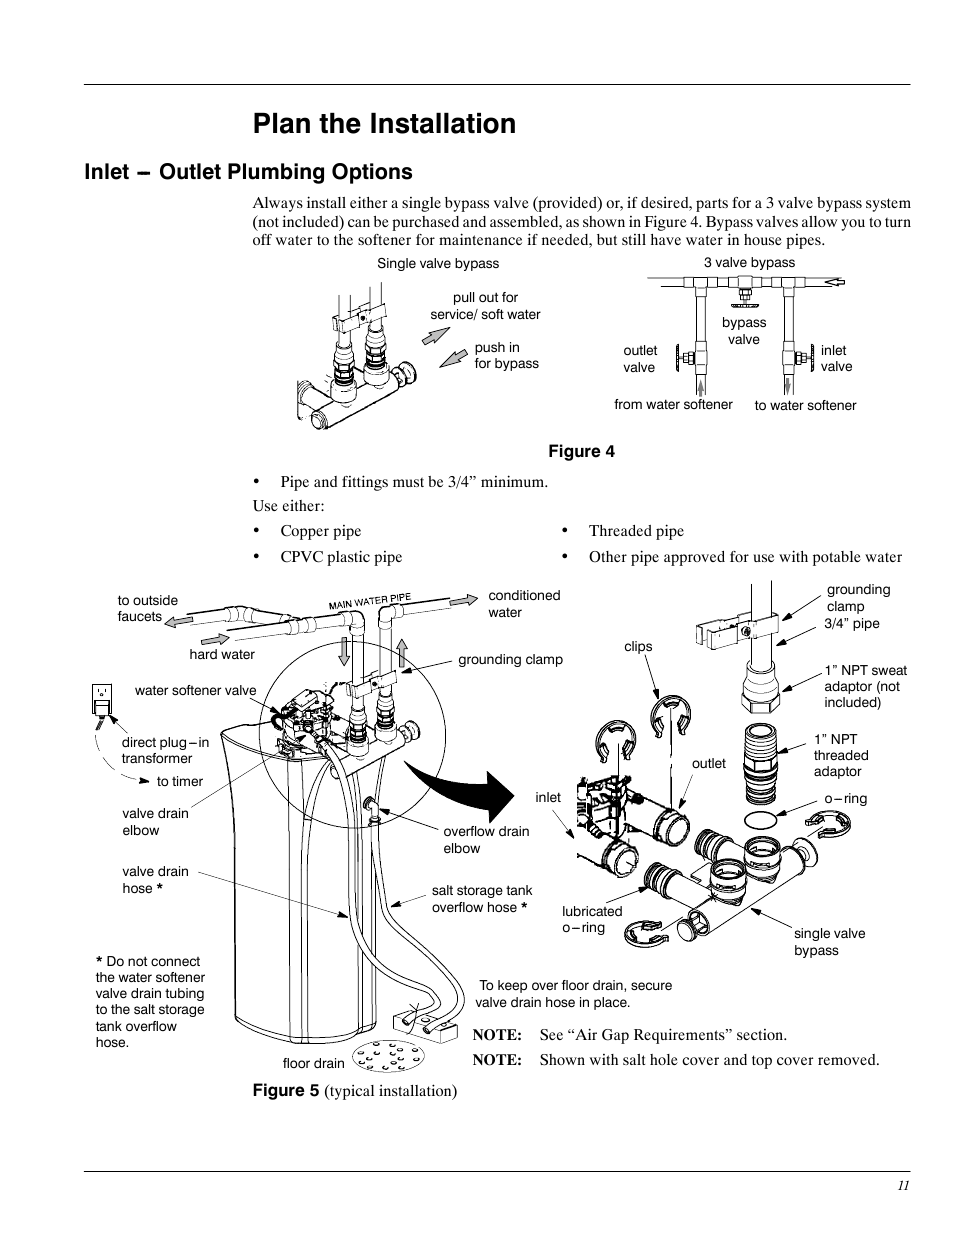 Whirlpool Water Softener Wiring Diagram Electrical Diagrams Heater Schematic Microwave Plan The Installation Inlet Outlet